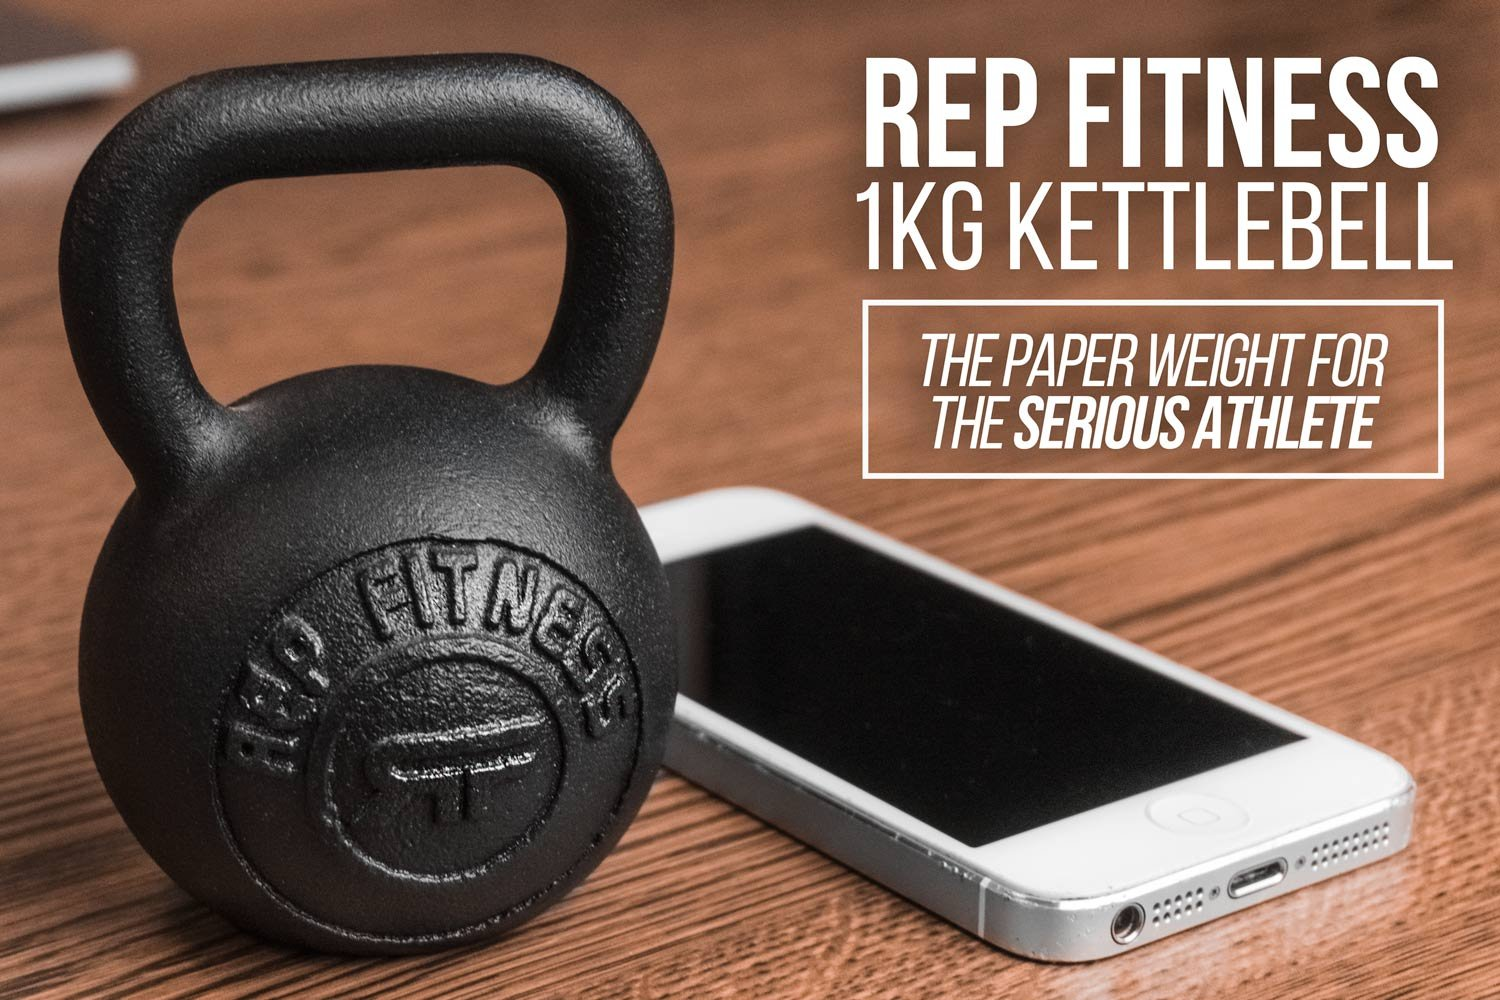 Rep 1 kg Kettlebell Paperweight or Gift Item by Rep Fitness (Image #4)